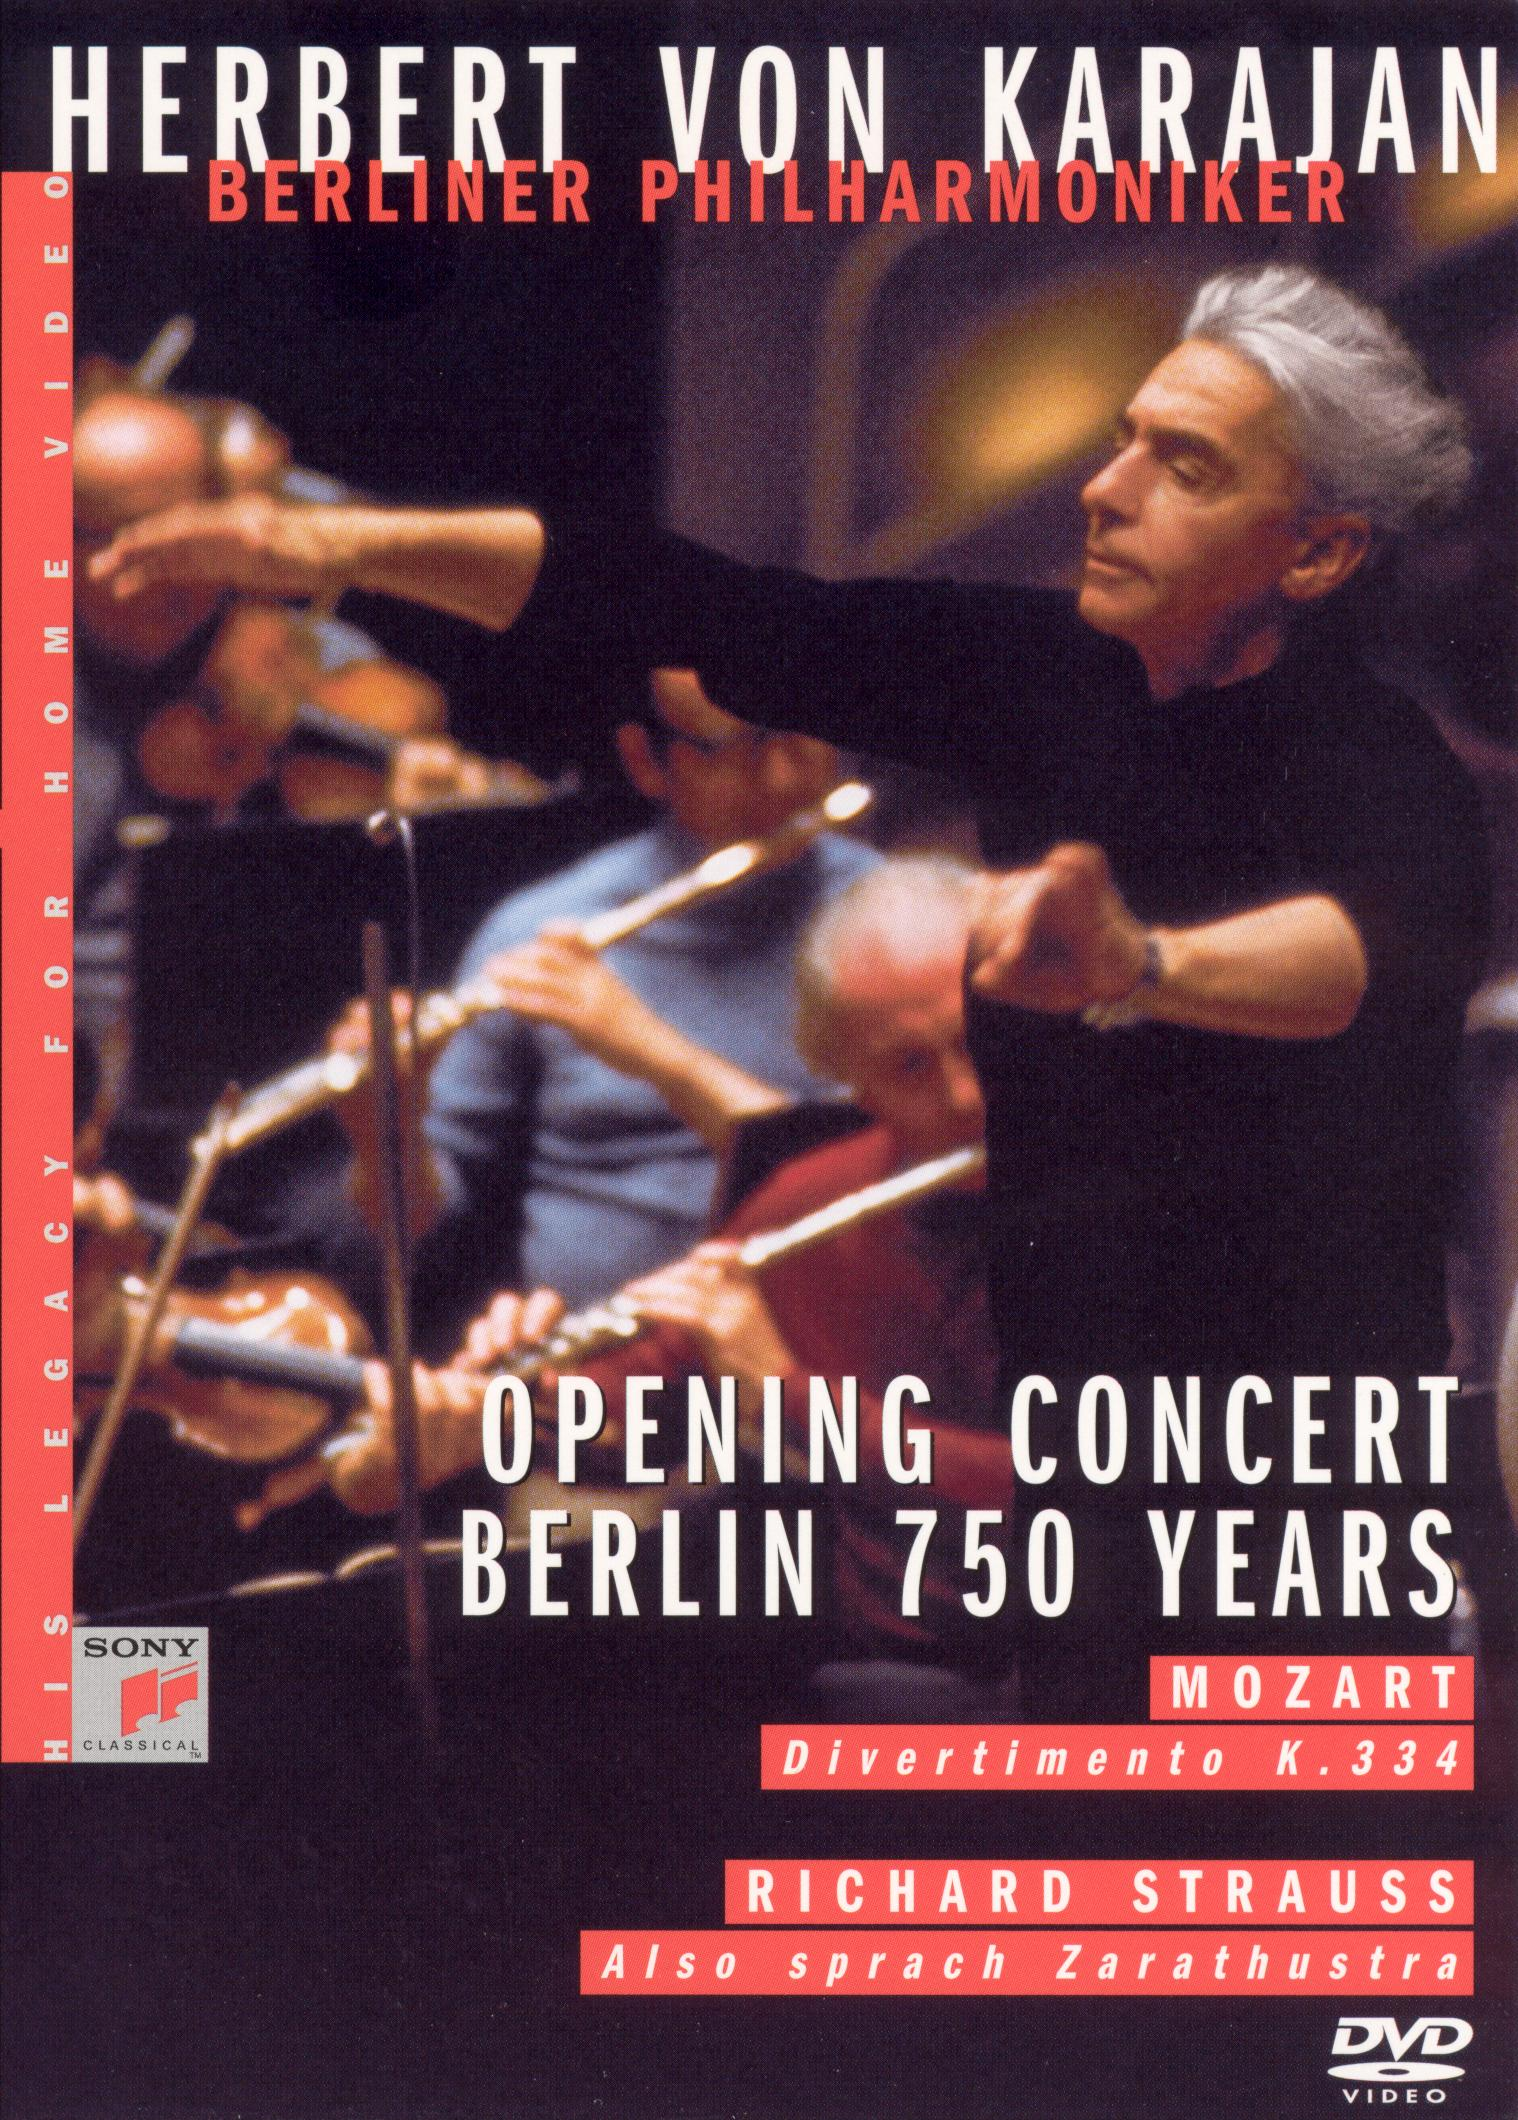 Herbert Von Karajan - His Legacy for Home Video: Opening Concert Berlin - 750 Years